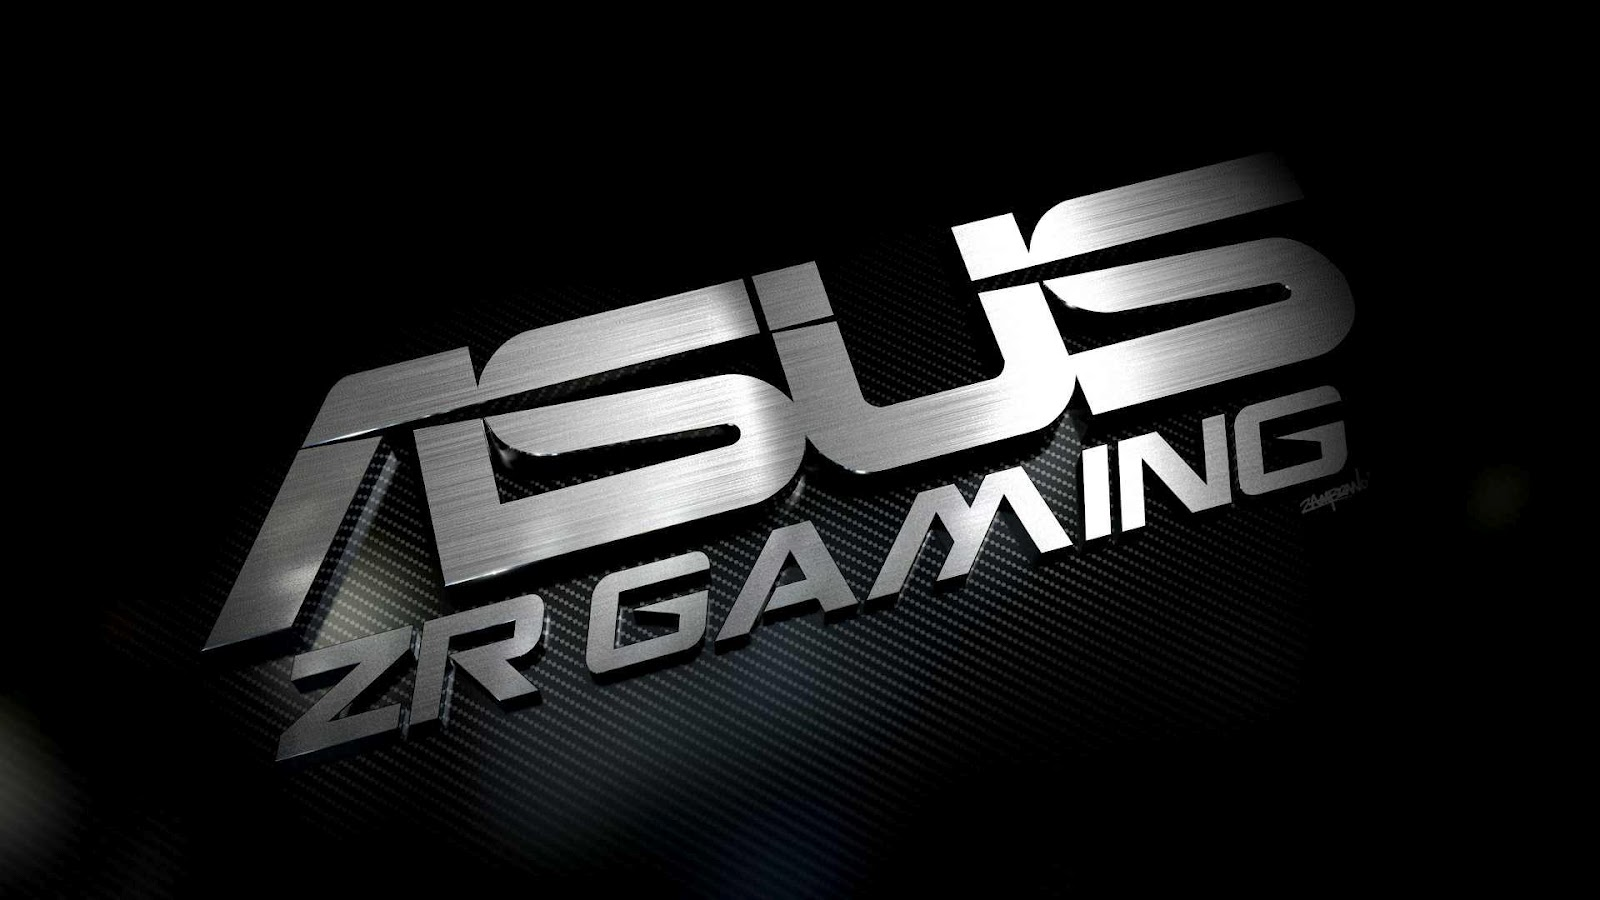 Hd Wallpapers Asus HD Wallpapers 1600x900